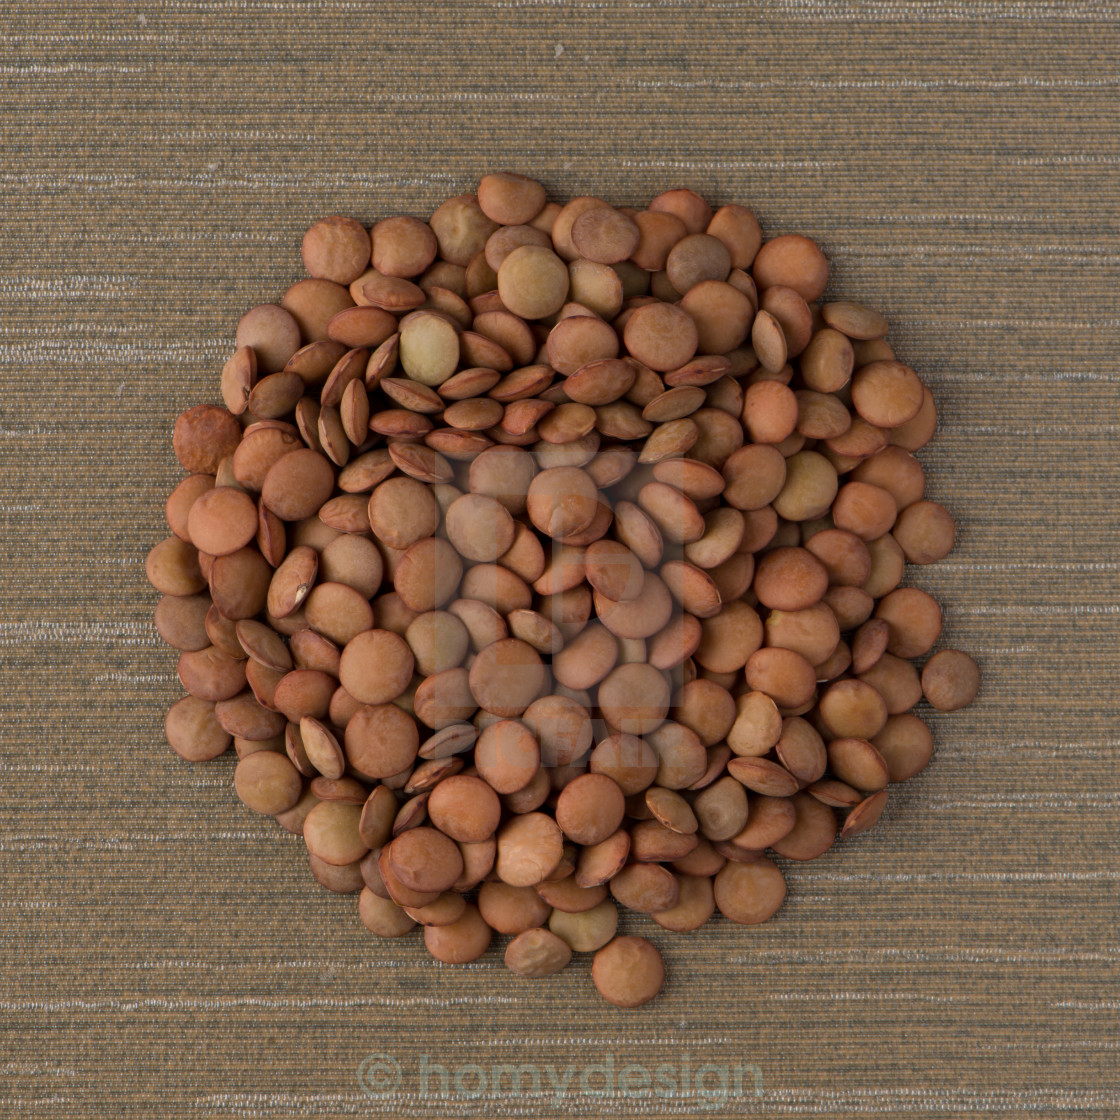 Circle of lentils - License, download or print for £9 99